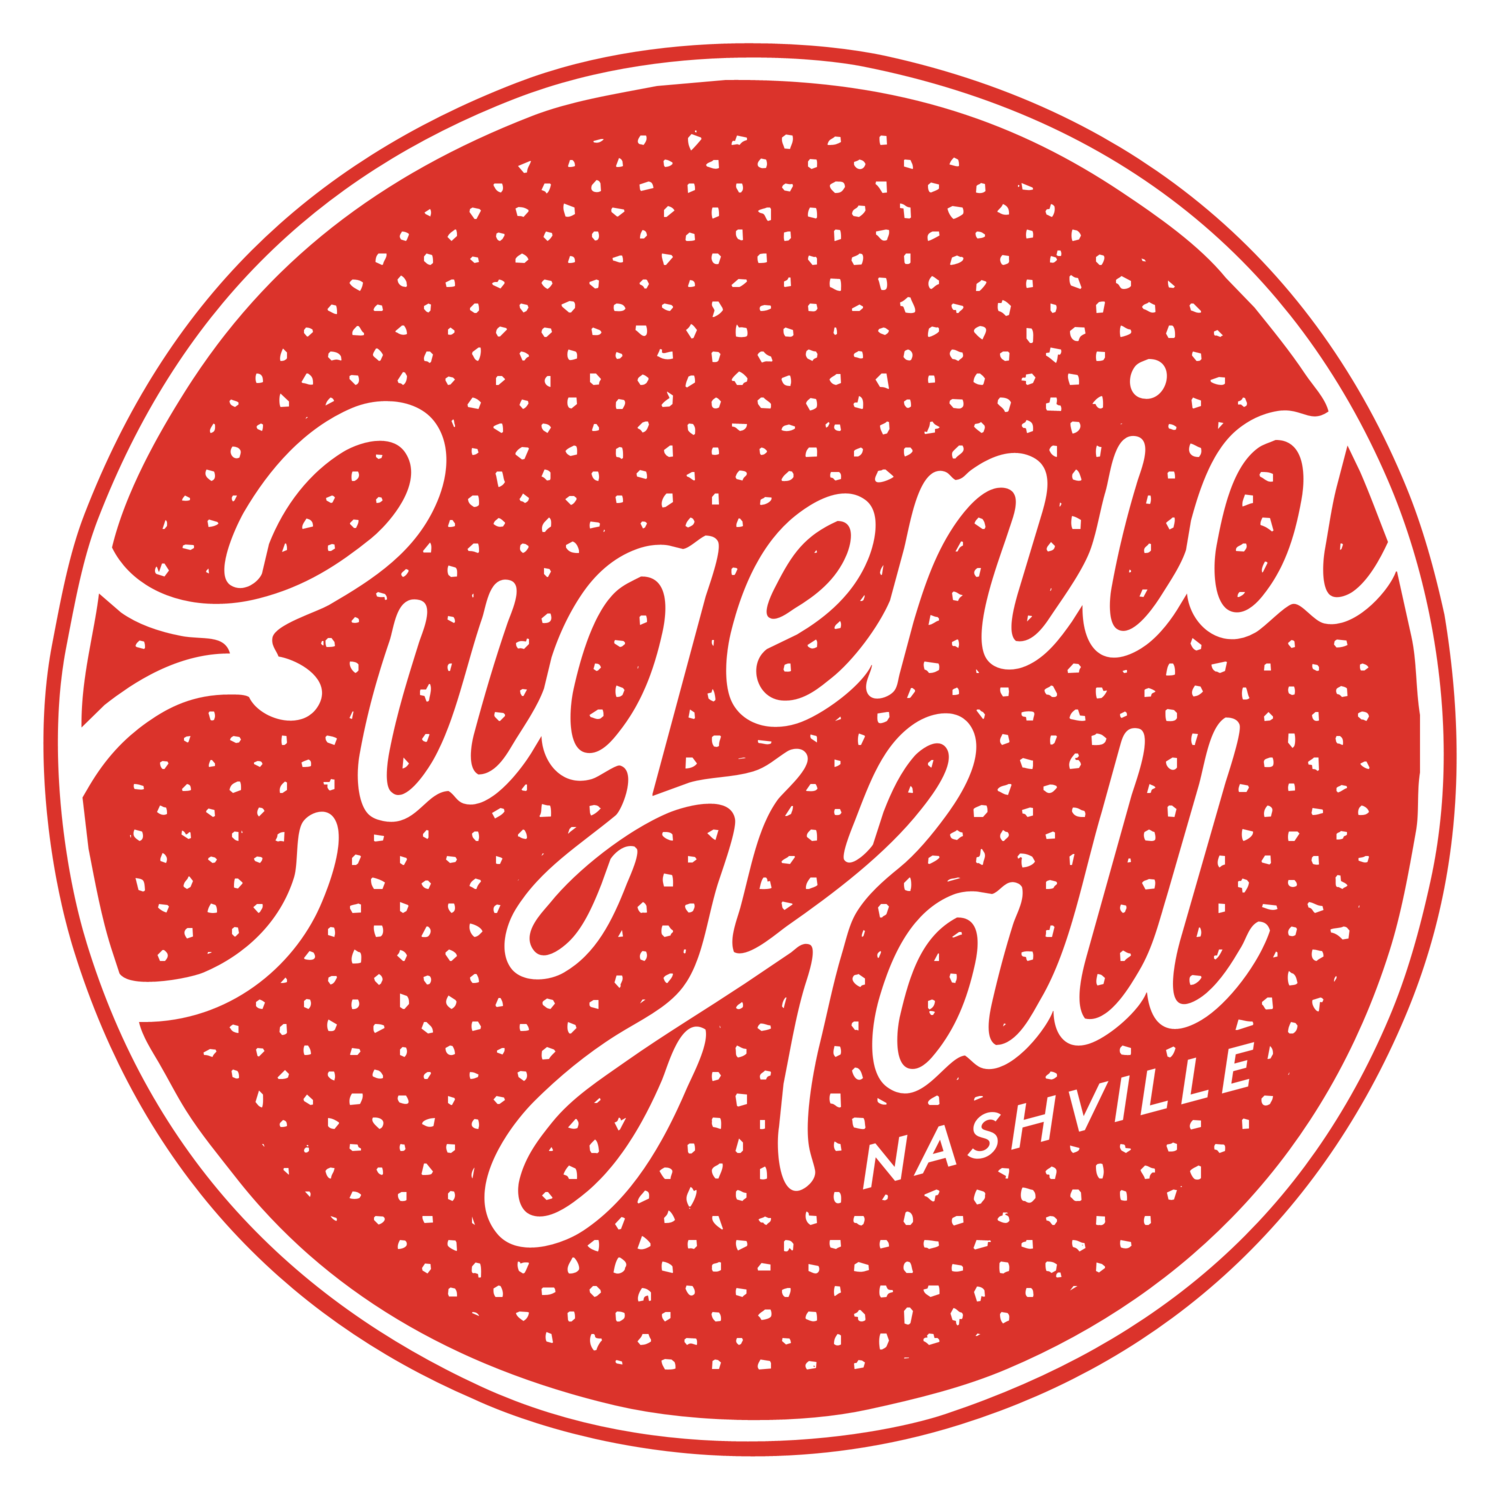 Eugenia Hall - Nashville Rehearsal Space & Band Practice Venue